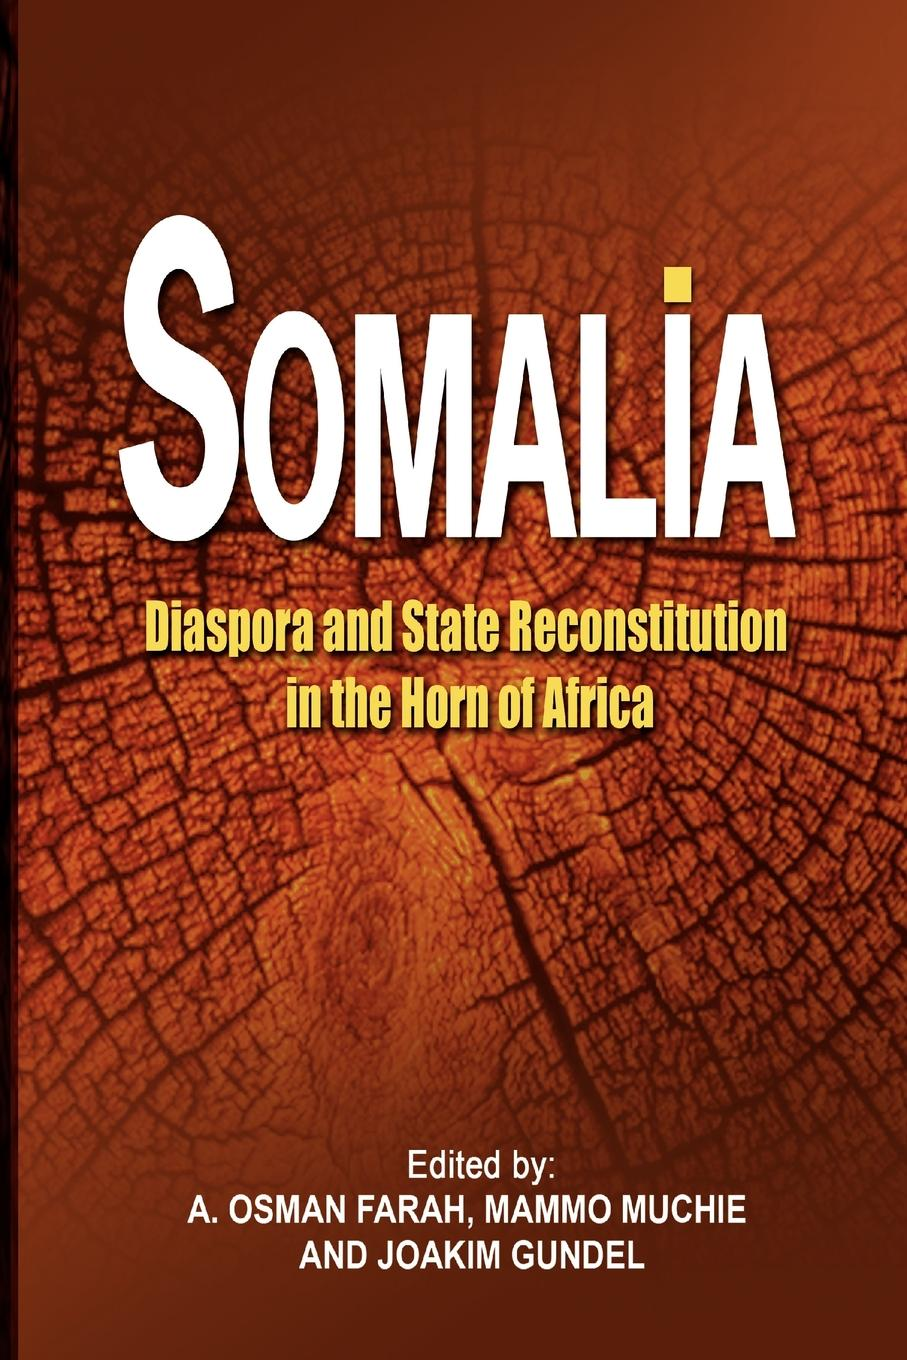 Somalia. Diaspora and State Reconstitution in the Horn of Africa godwin sadoh five decades of music transmutation in nigeria and the diaspora